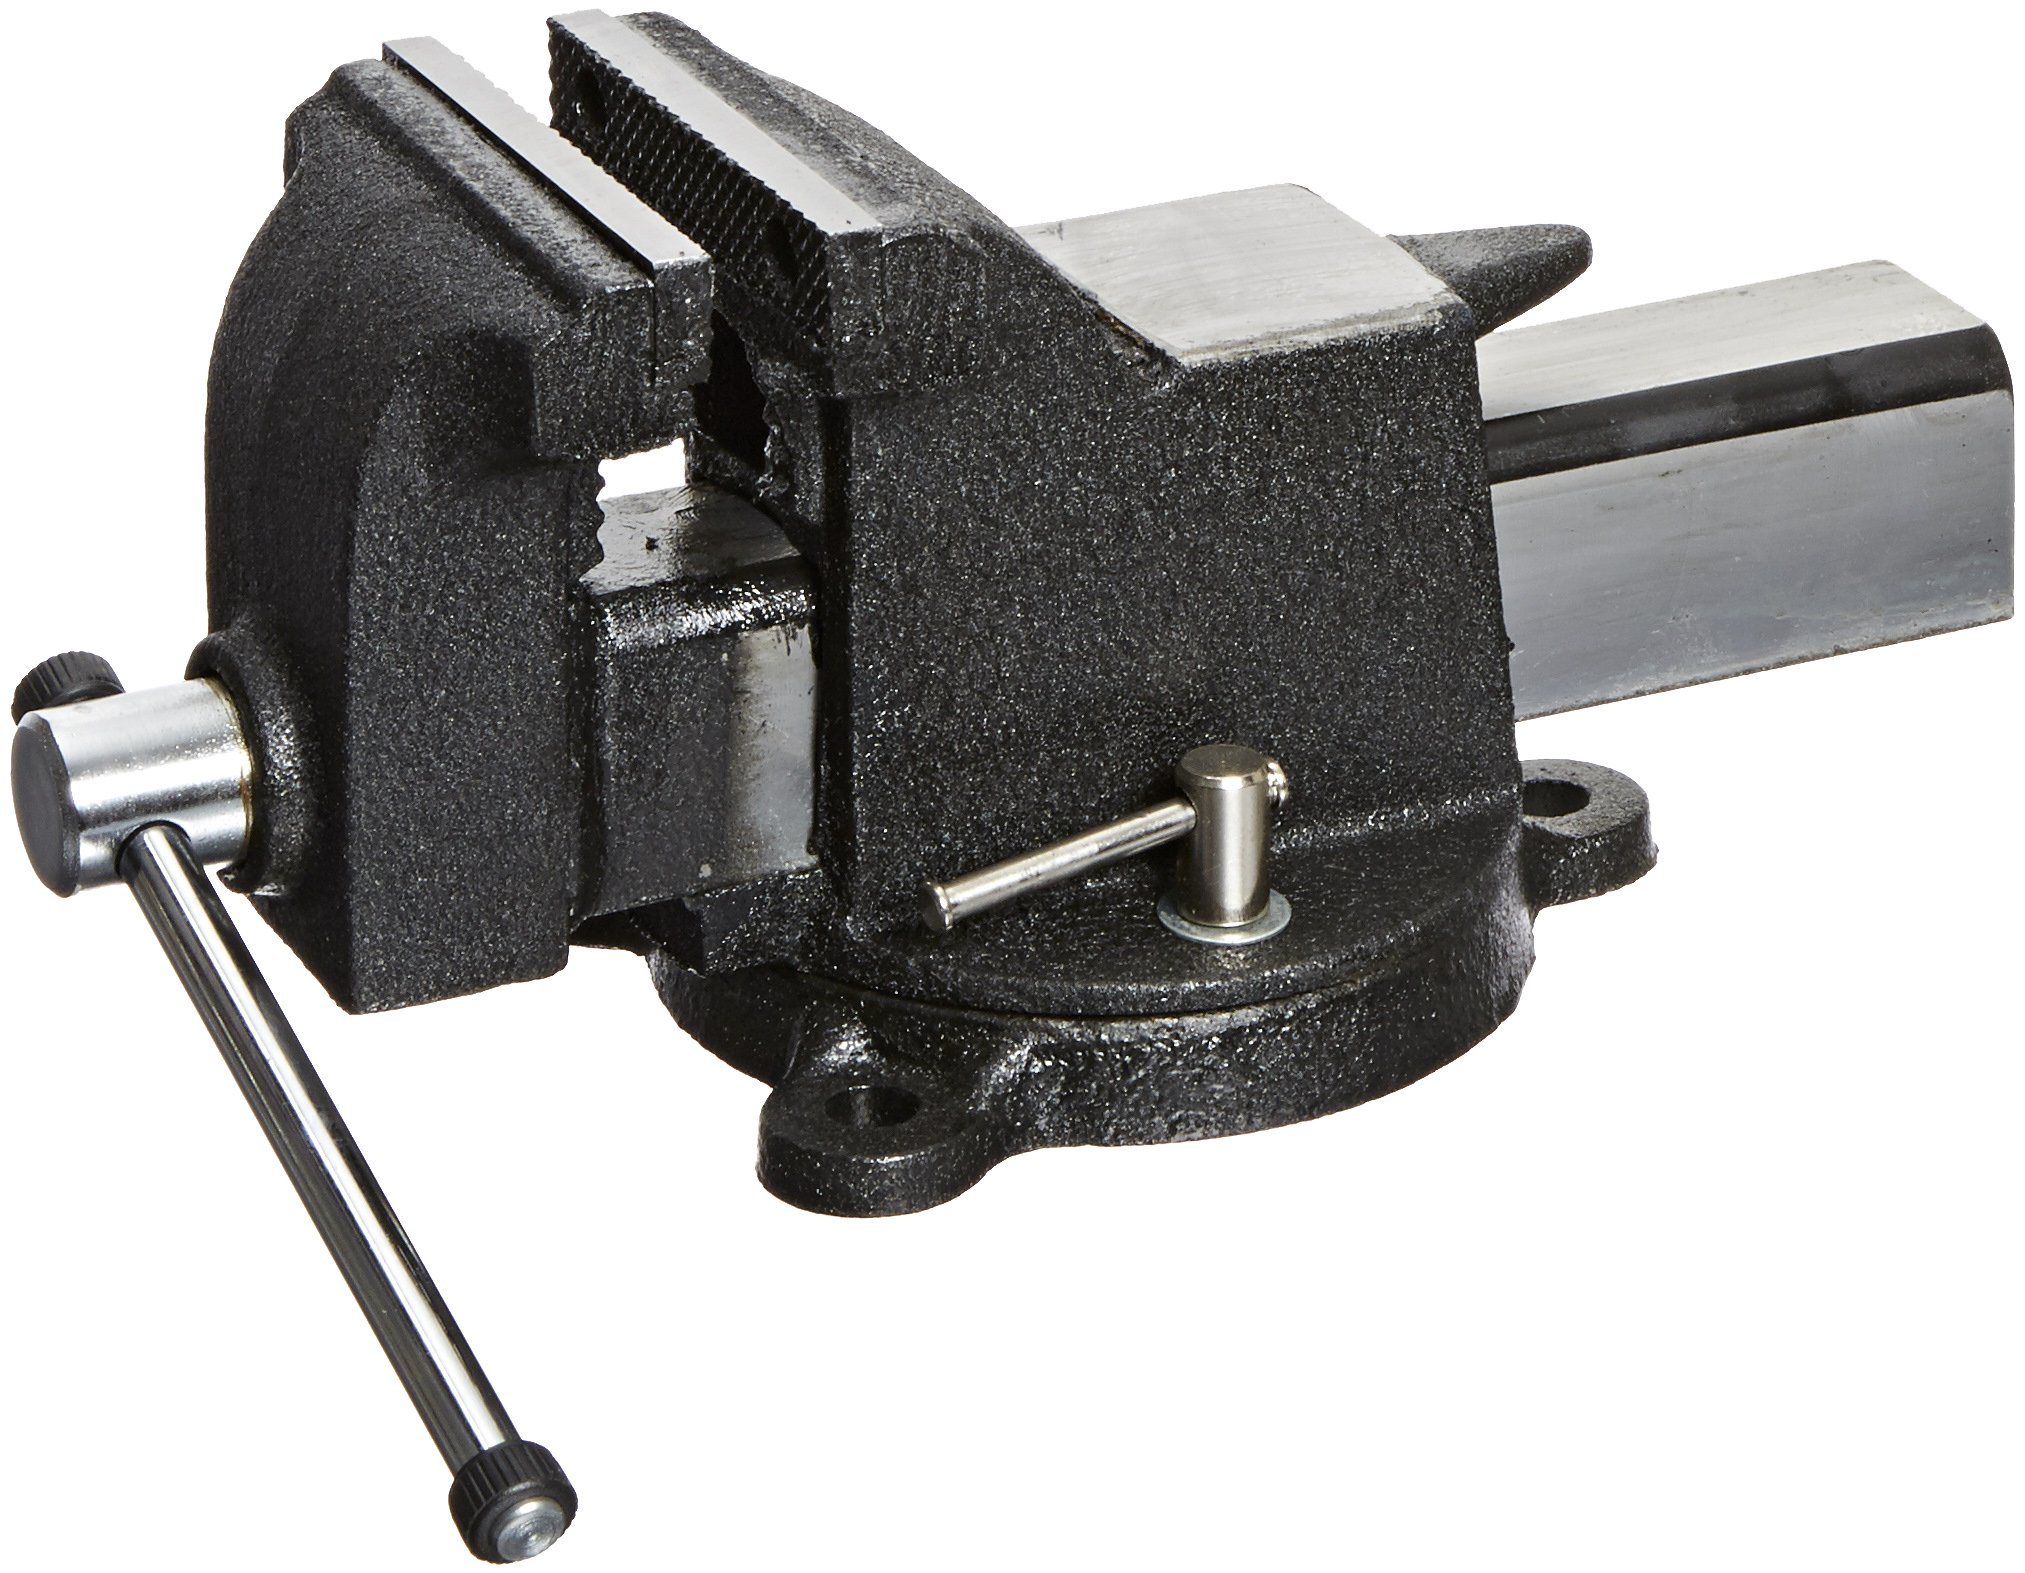 Yost Vises 934-AS 4'' All-Steel Combination Pipe and Bench Vise with 360-Degree Swivel Base